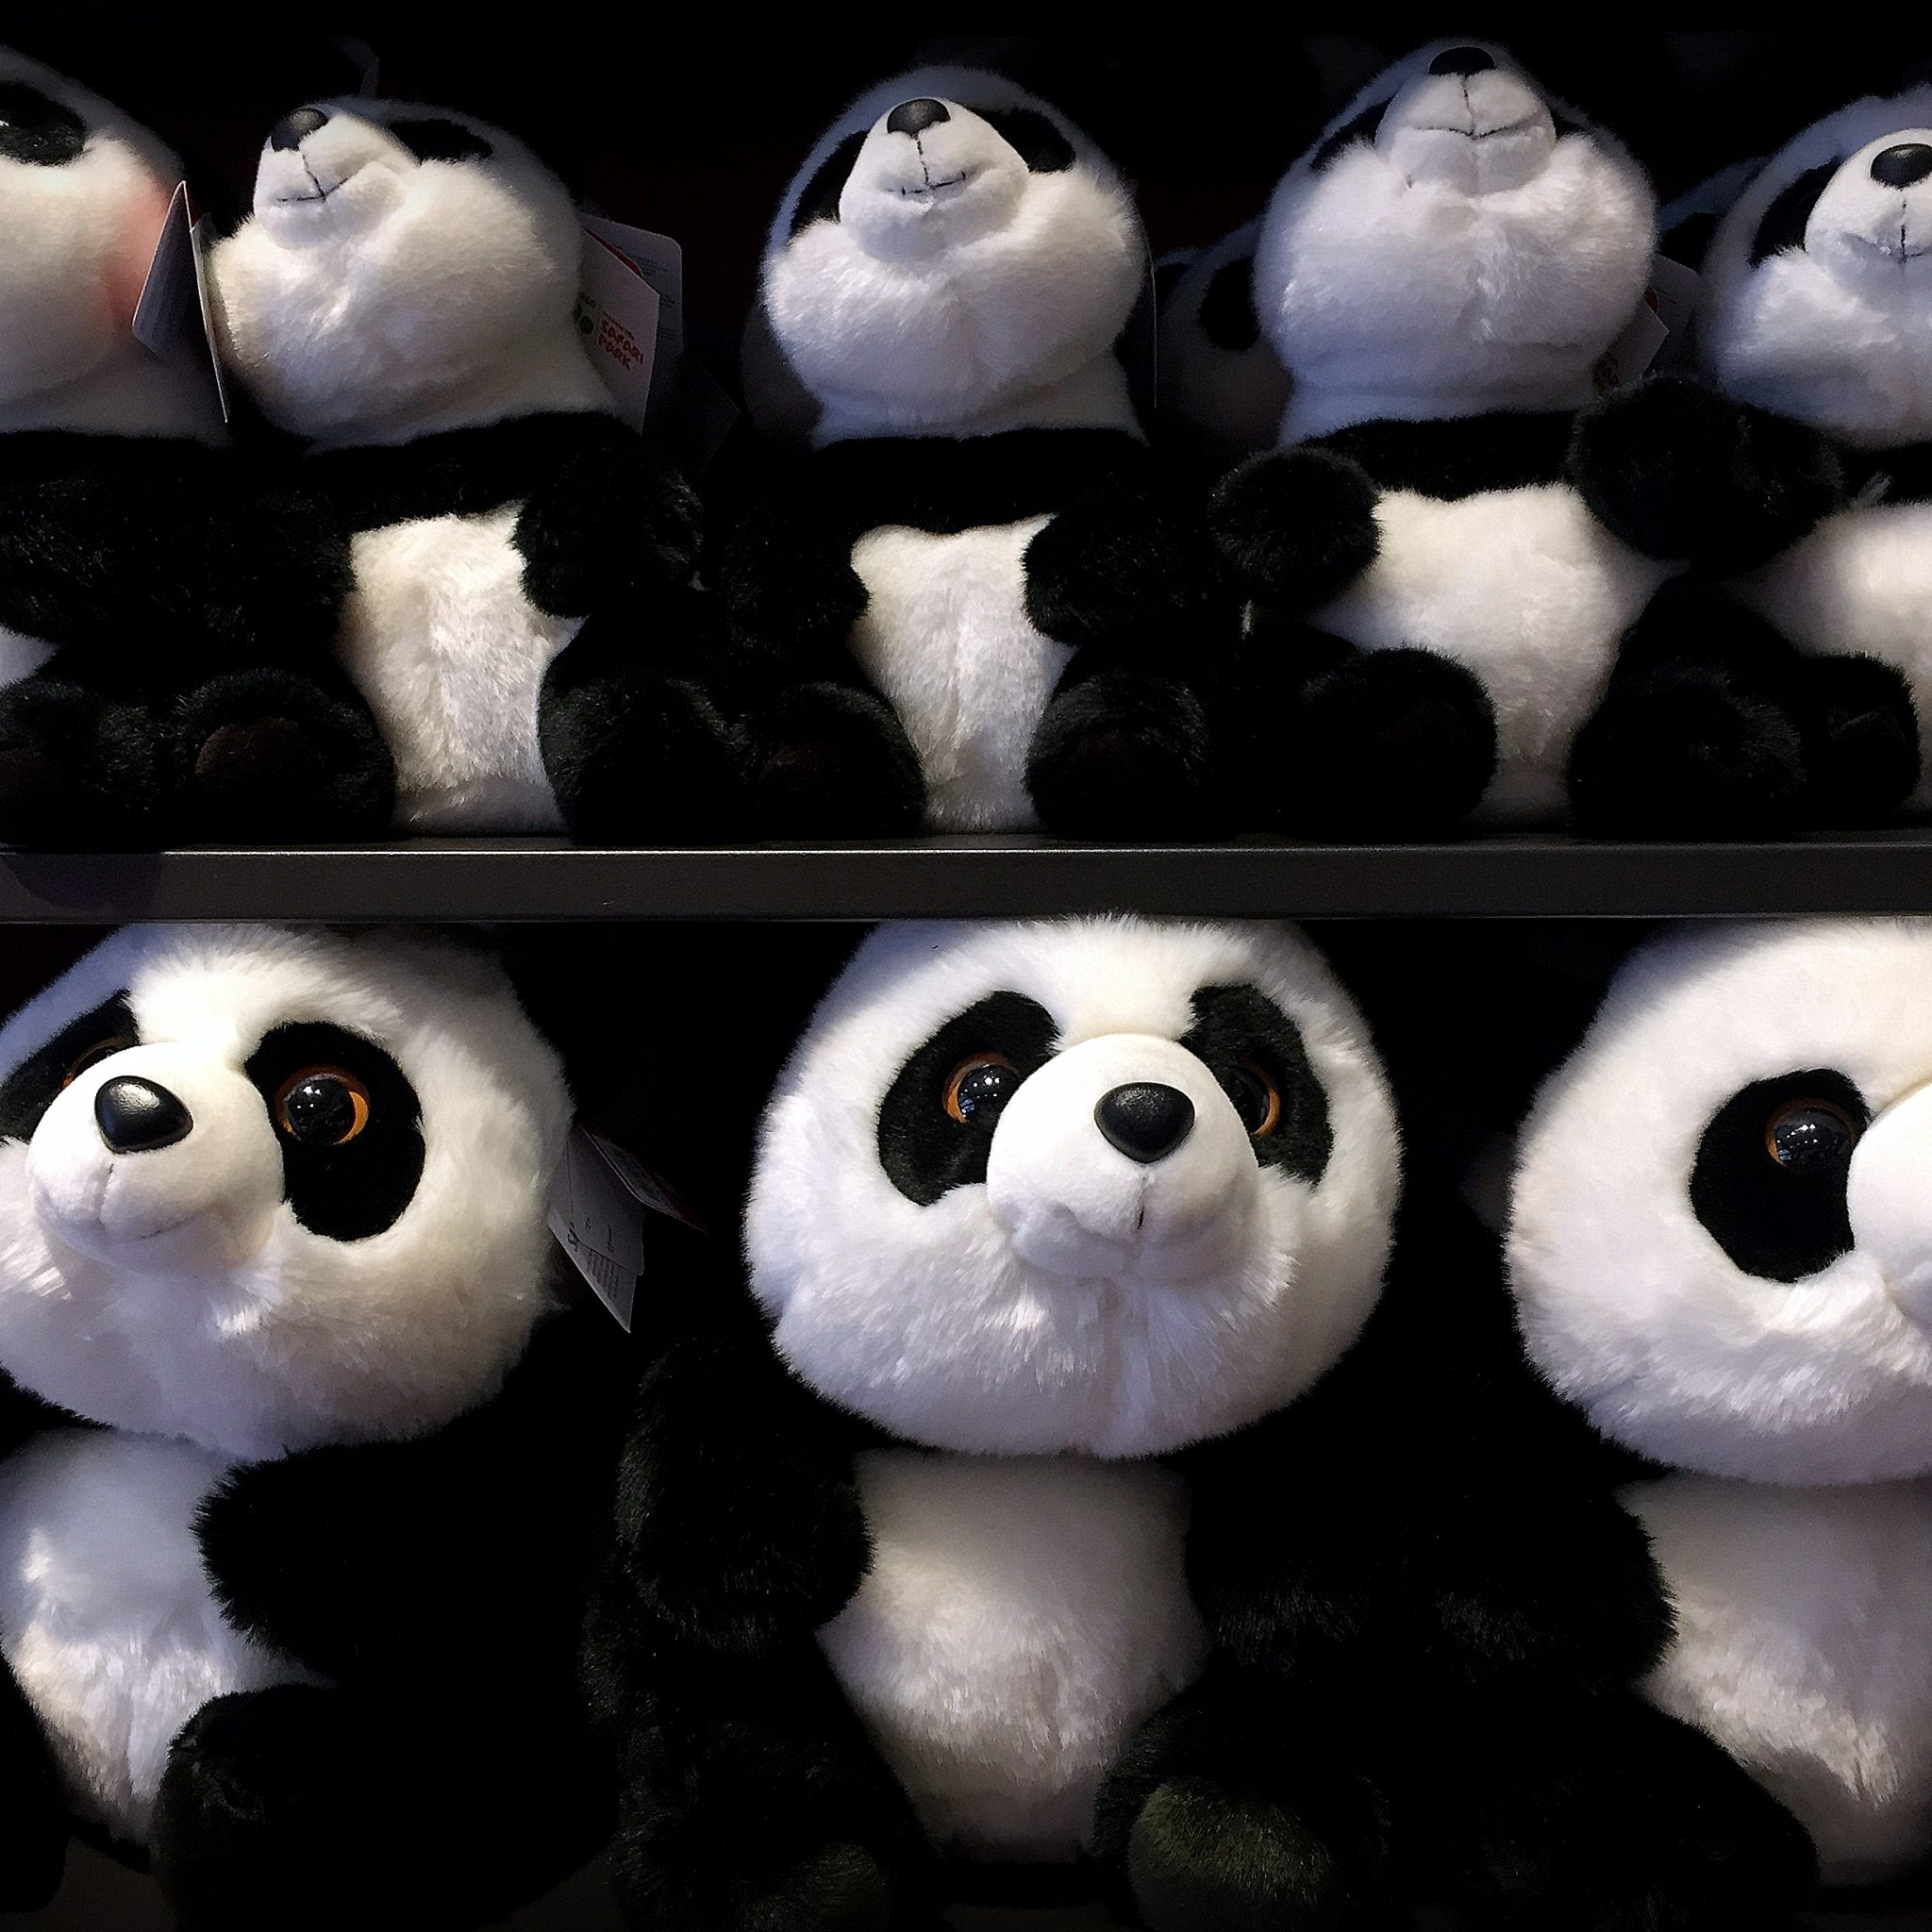 Buy one, save one. San Diego Zoo gift shop actively supports their panda conservation work.